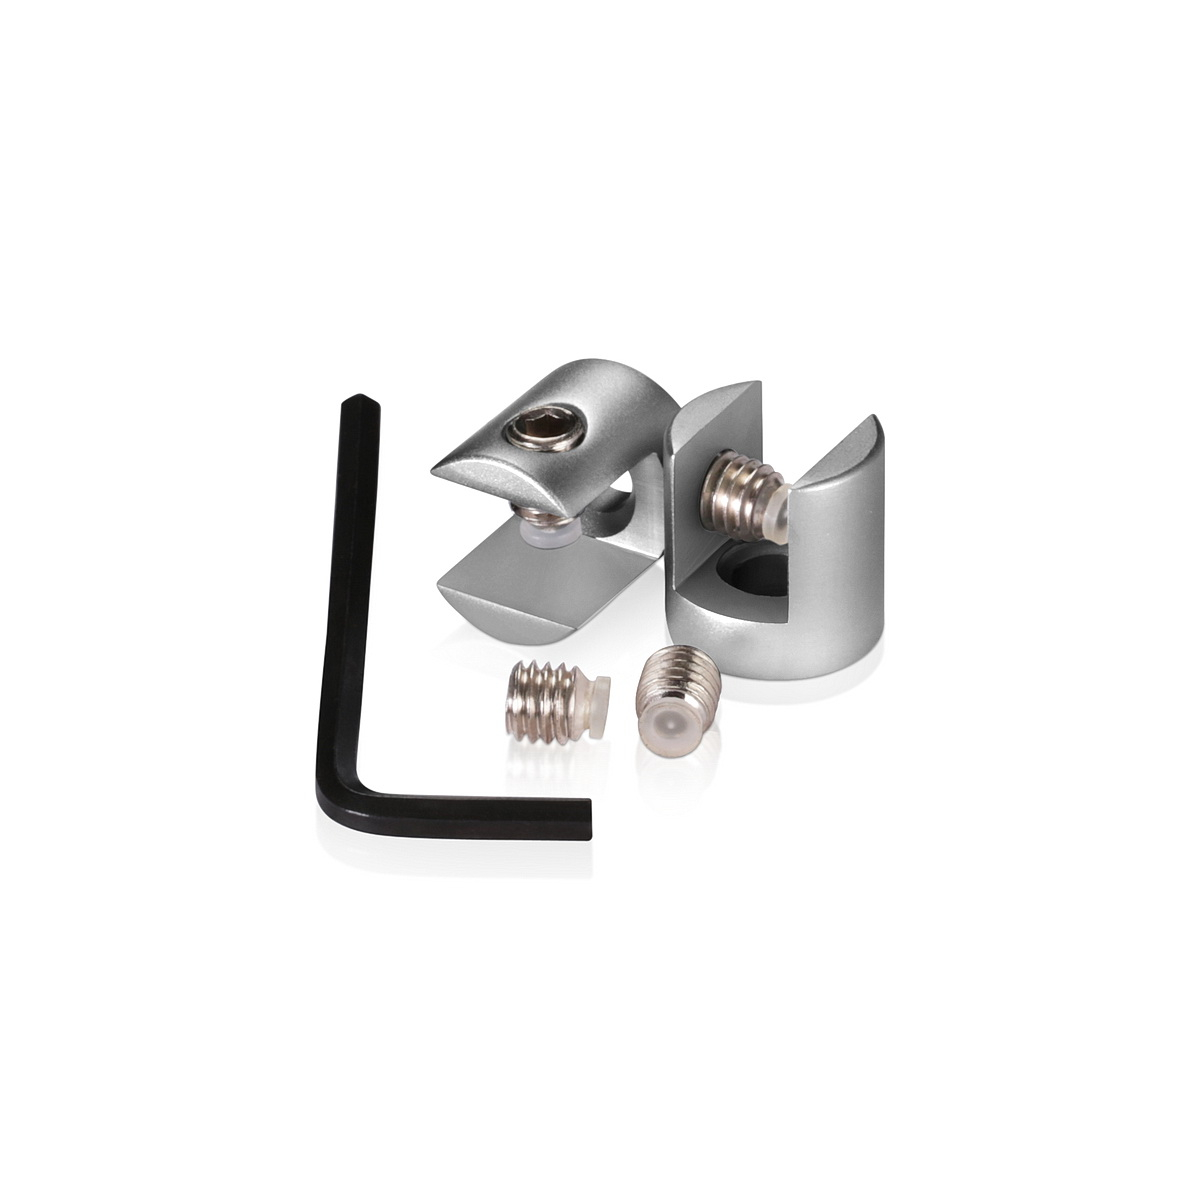 Aluminum Anodized Finish Projecting Gripper, Holds Up To 3/8'' Material